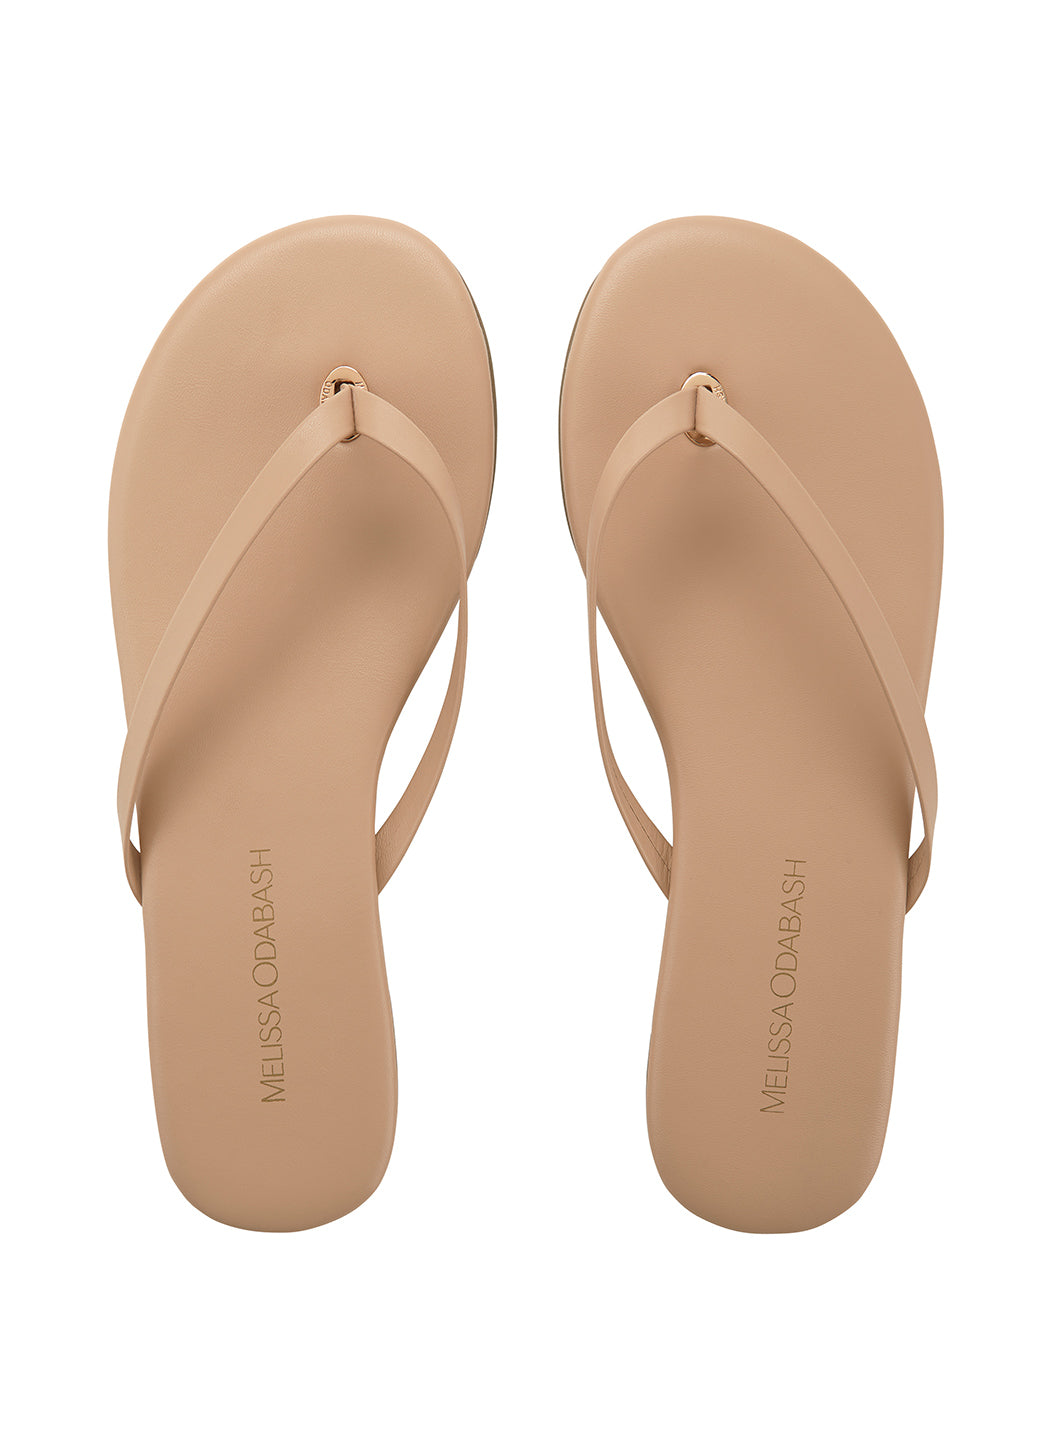 Melissa Odabash Leather Flip Flops Nude - Melissa Odabash Accessories